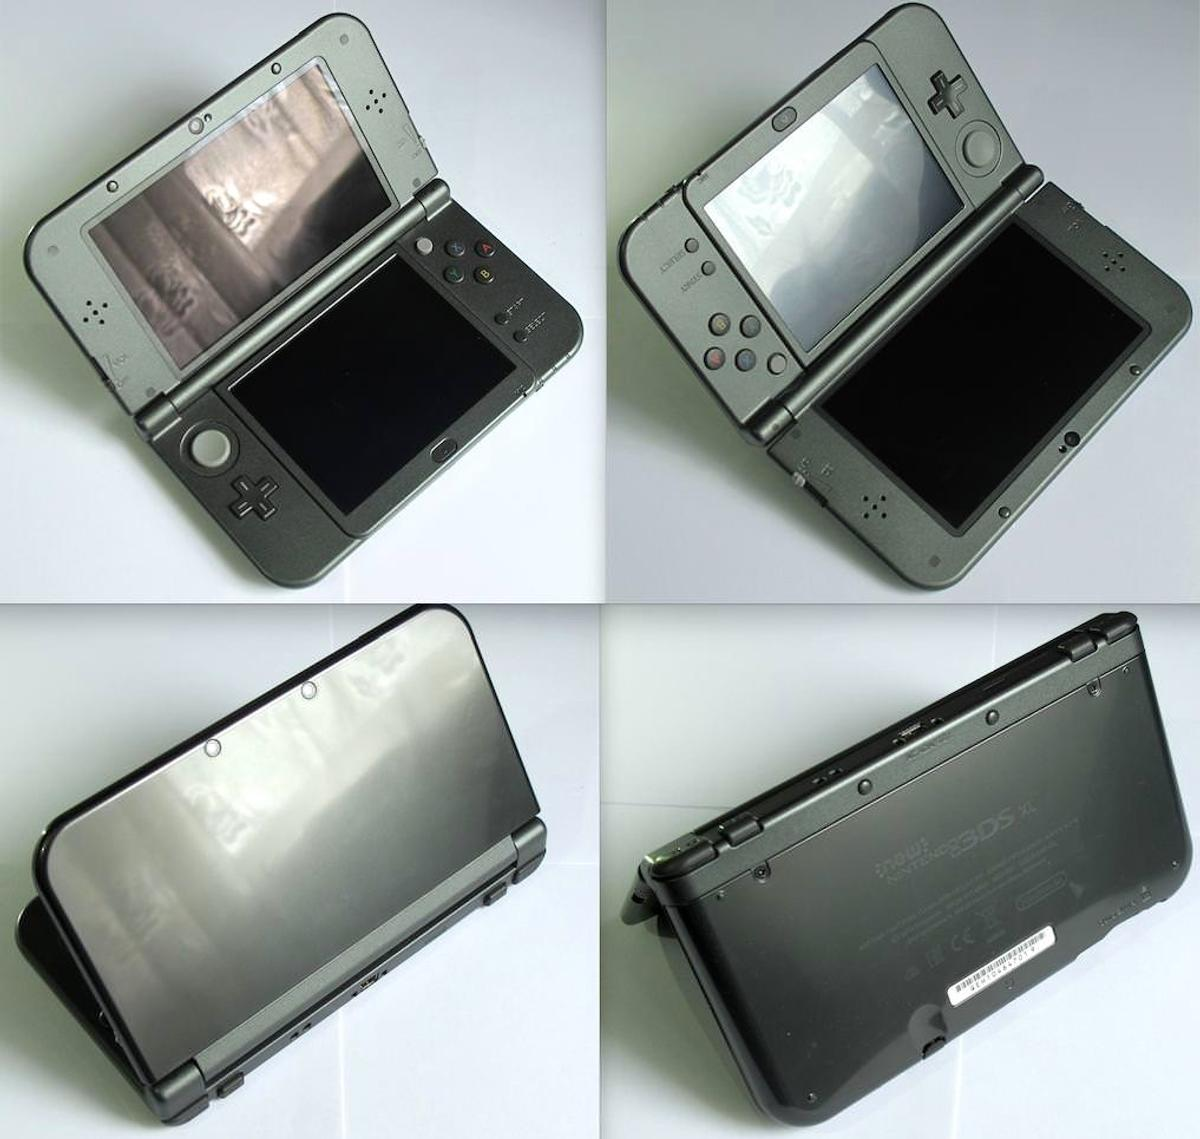 NINTENDO 'New' 3DS XL Black 64GB w/ 130 Games in WC2H